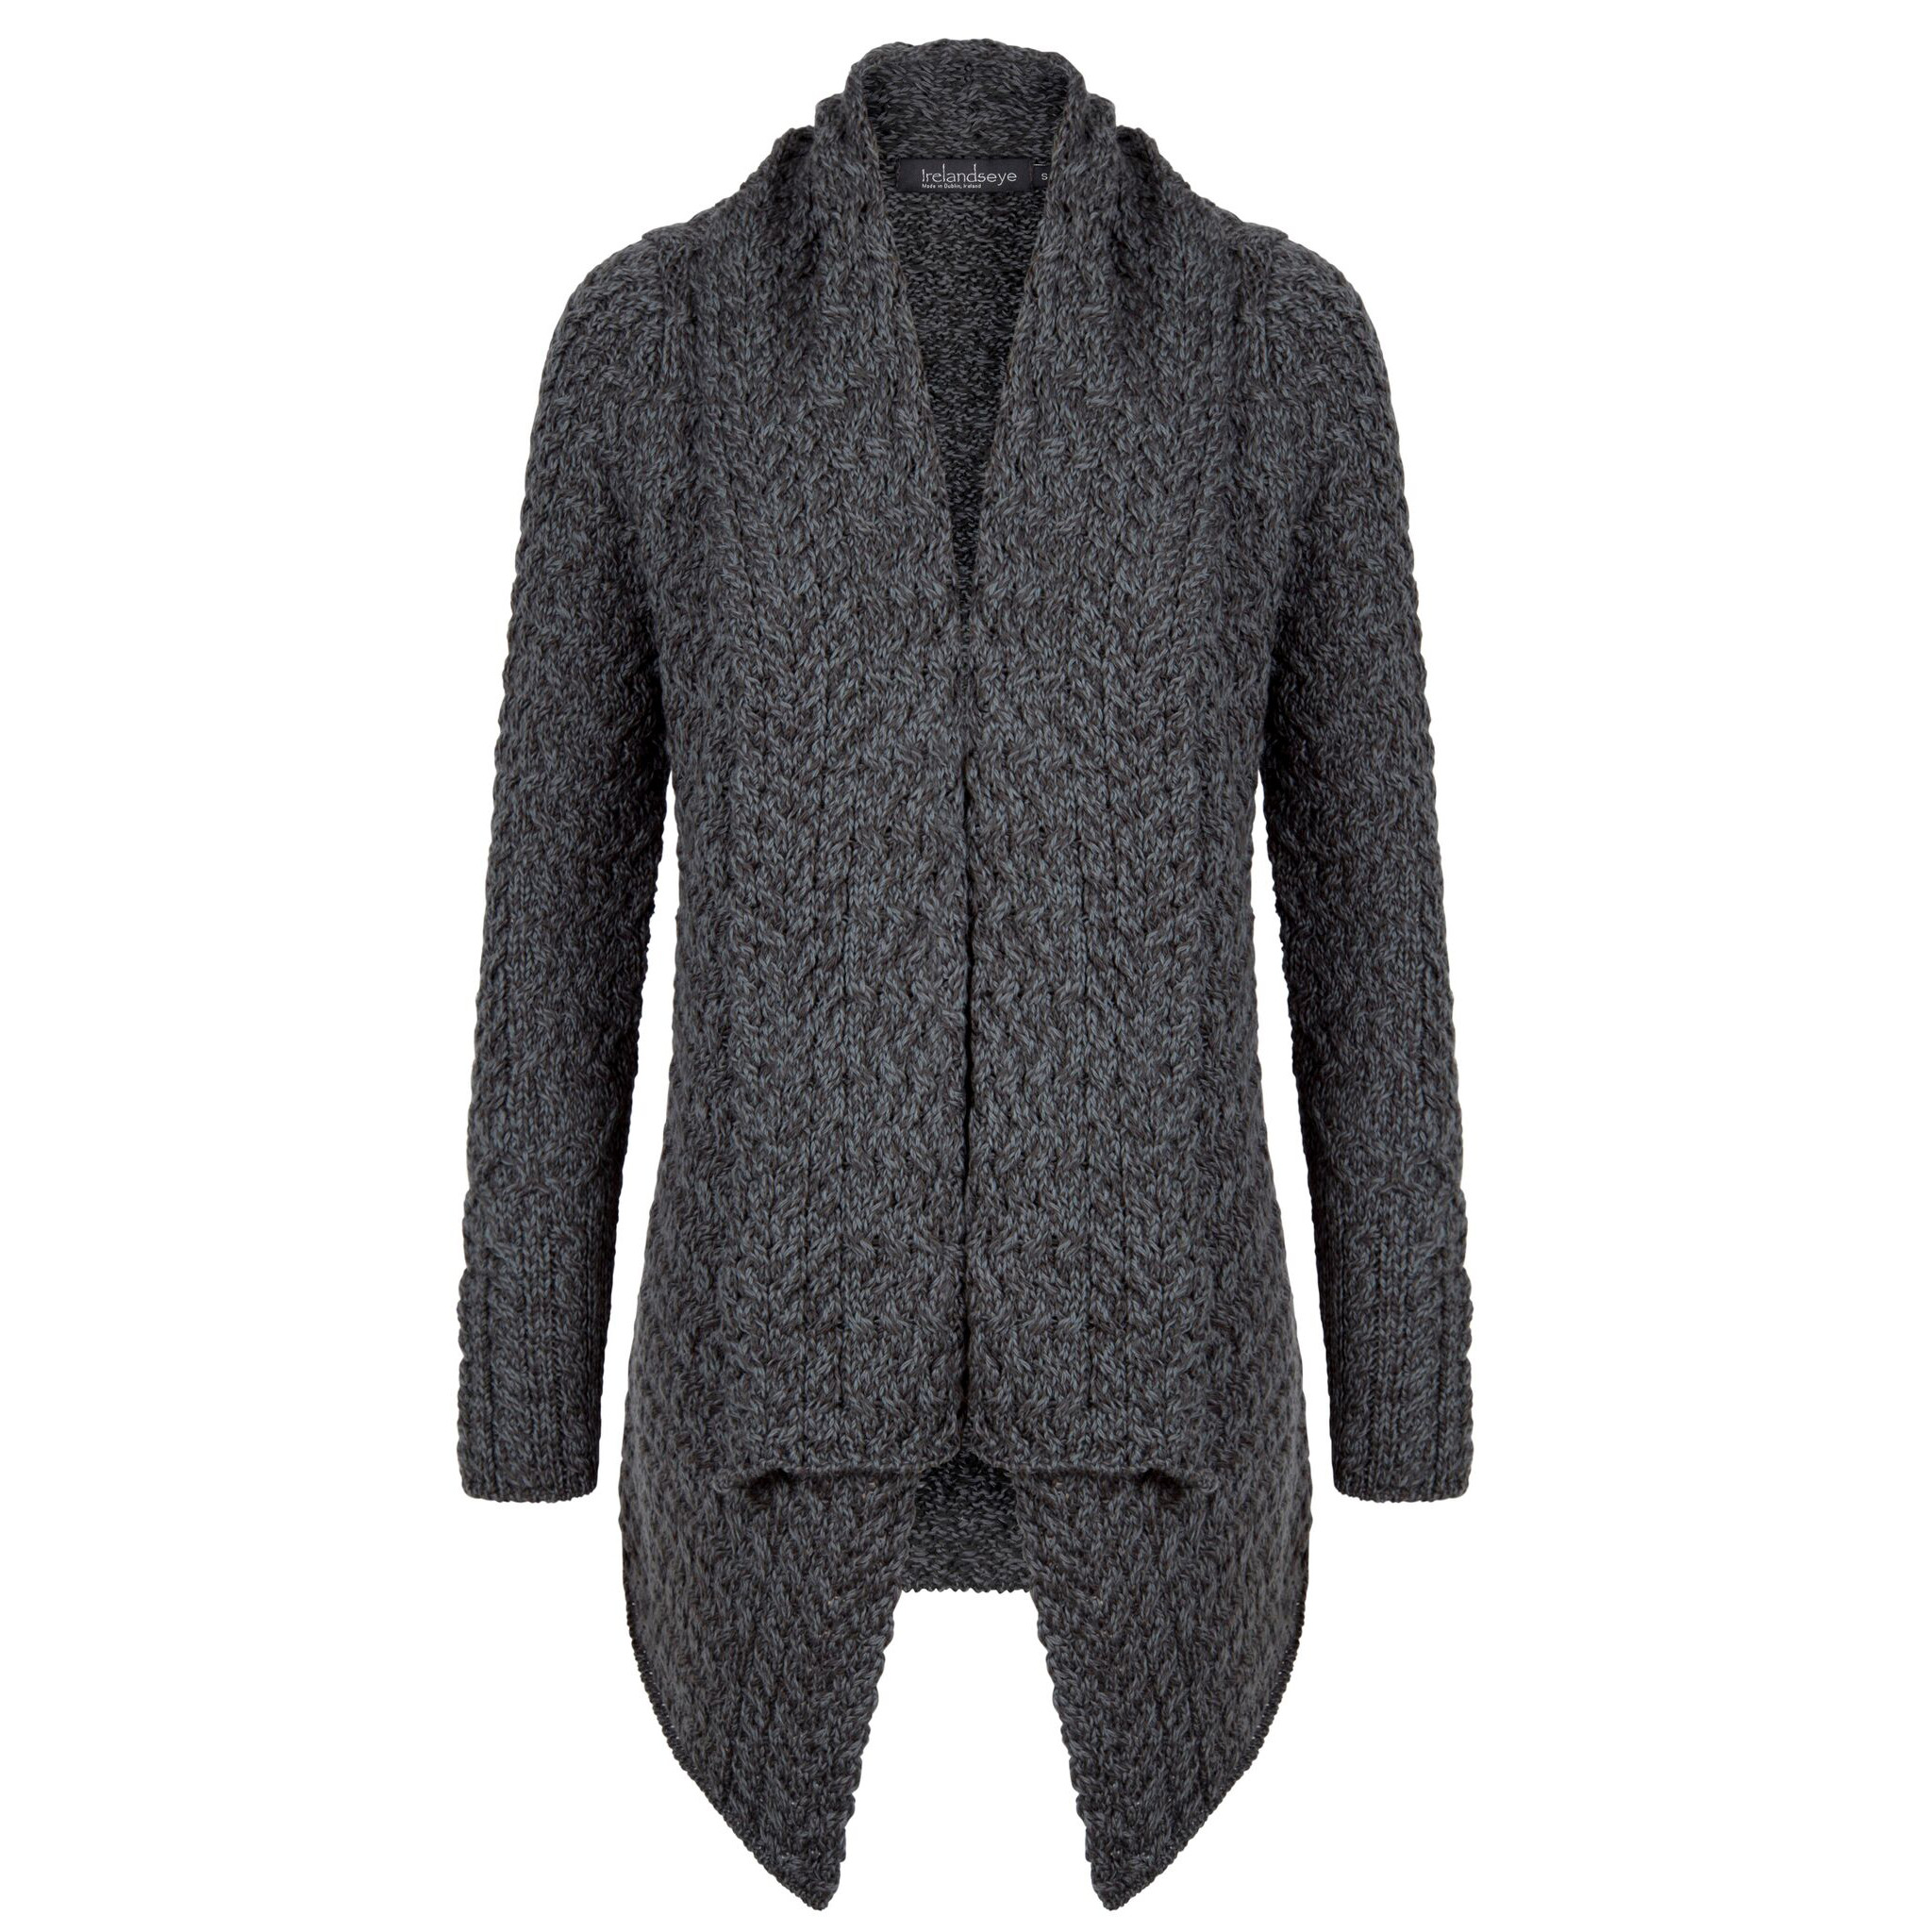 Glenross Waterfall Cardigan - Ireland Knitwear